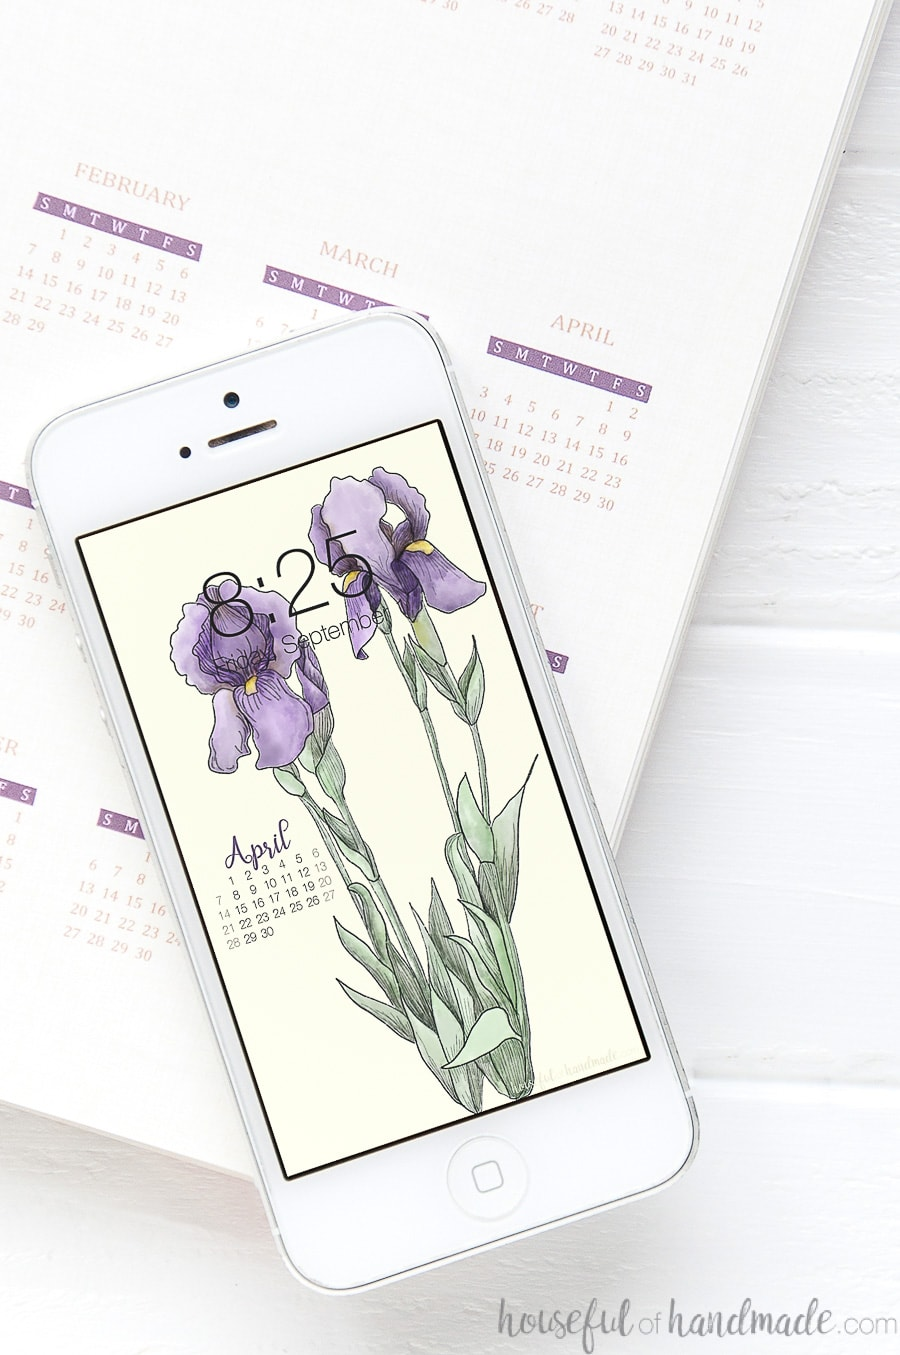 White iPhone with iris wallpaper on the background on top of a planner.